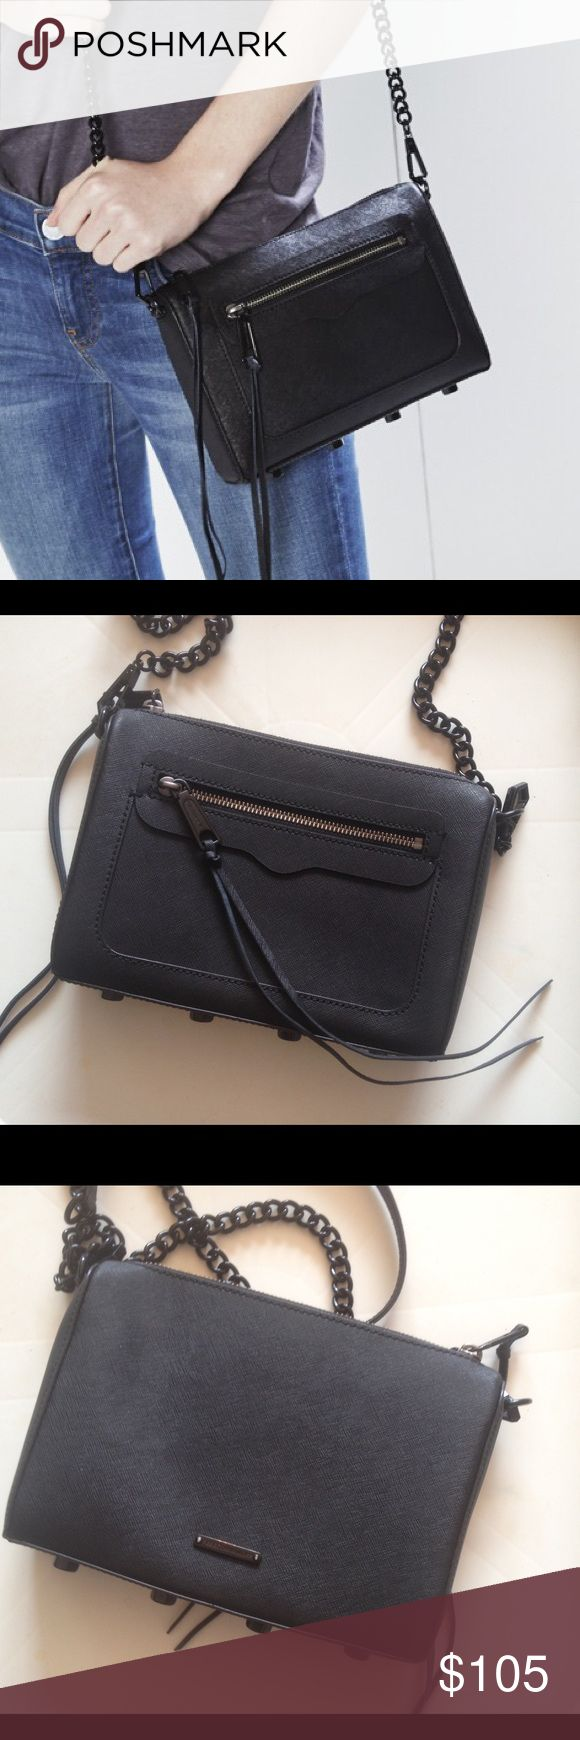 Rebecca Minkoff Avery Crossbody Bag Black Cute crossbody bag in excellent shape inside and out with some very minor discoloration to hardware. Rebecca Minkoff Bags Crossbody Bags